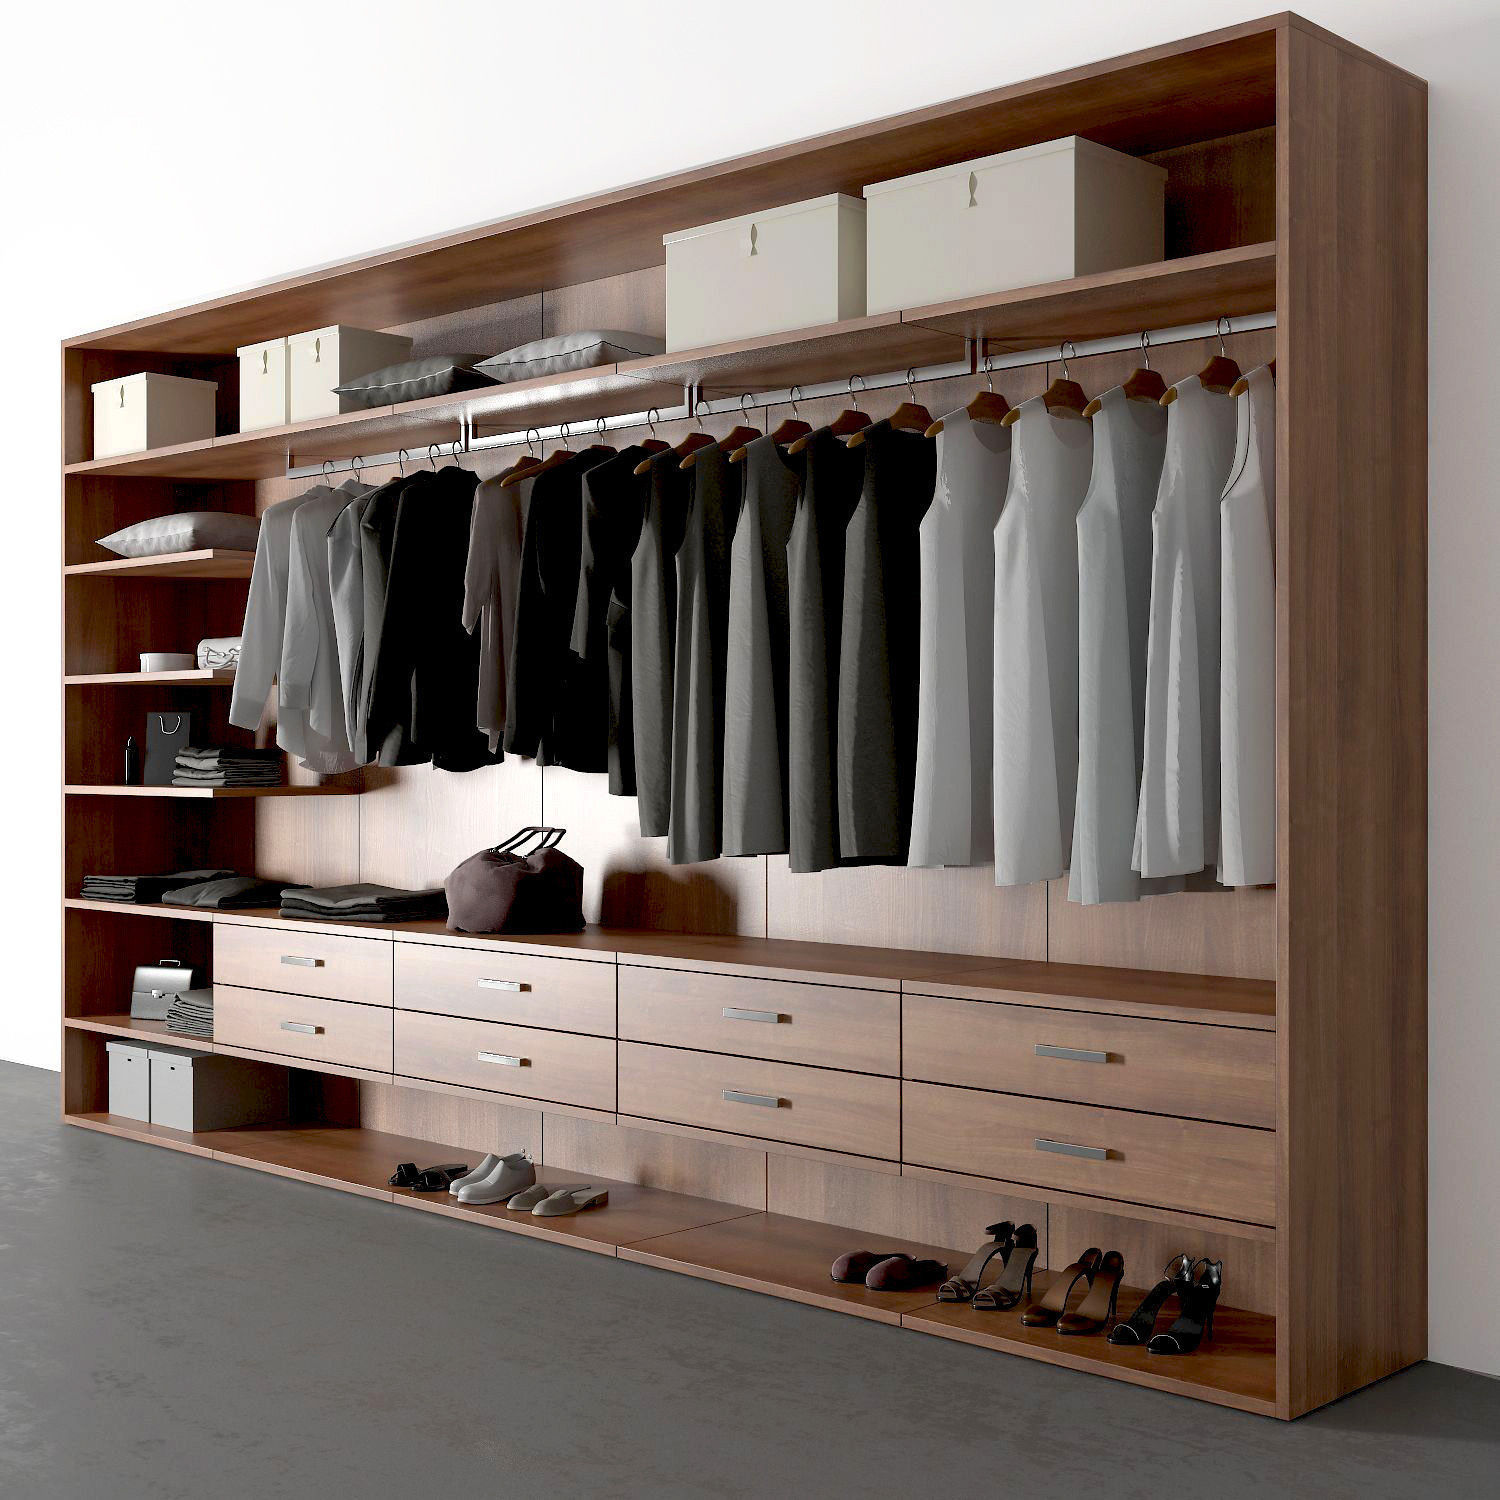 wardrobe  Poliform